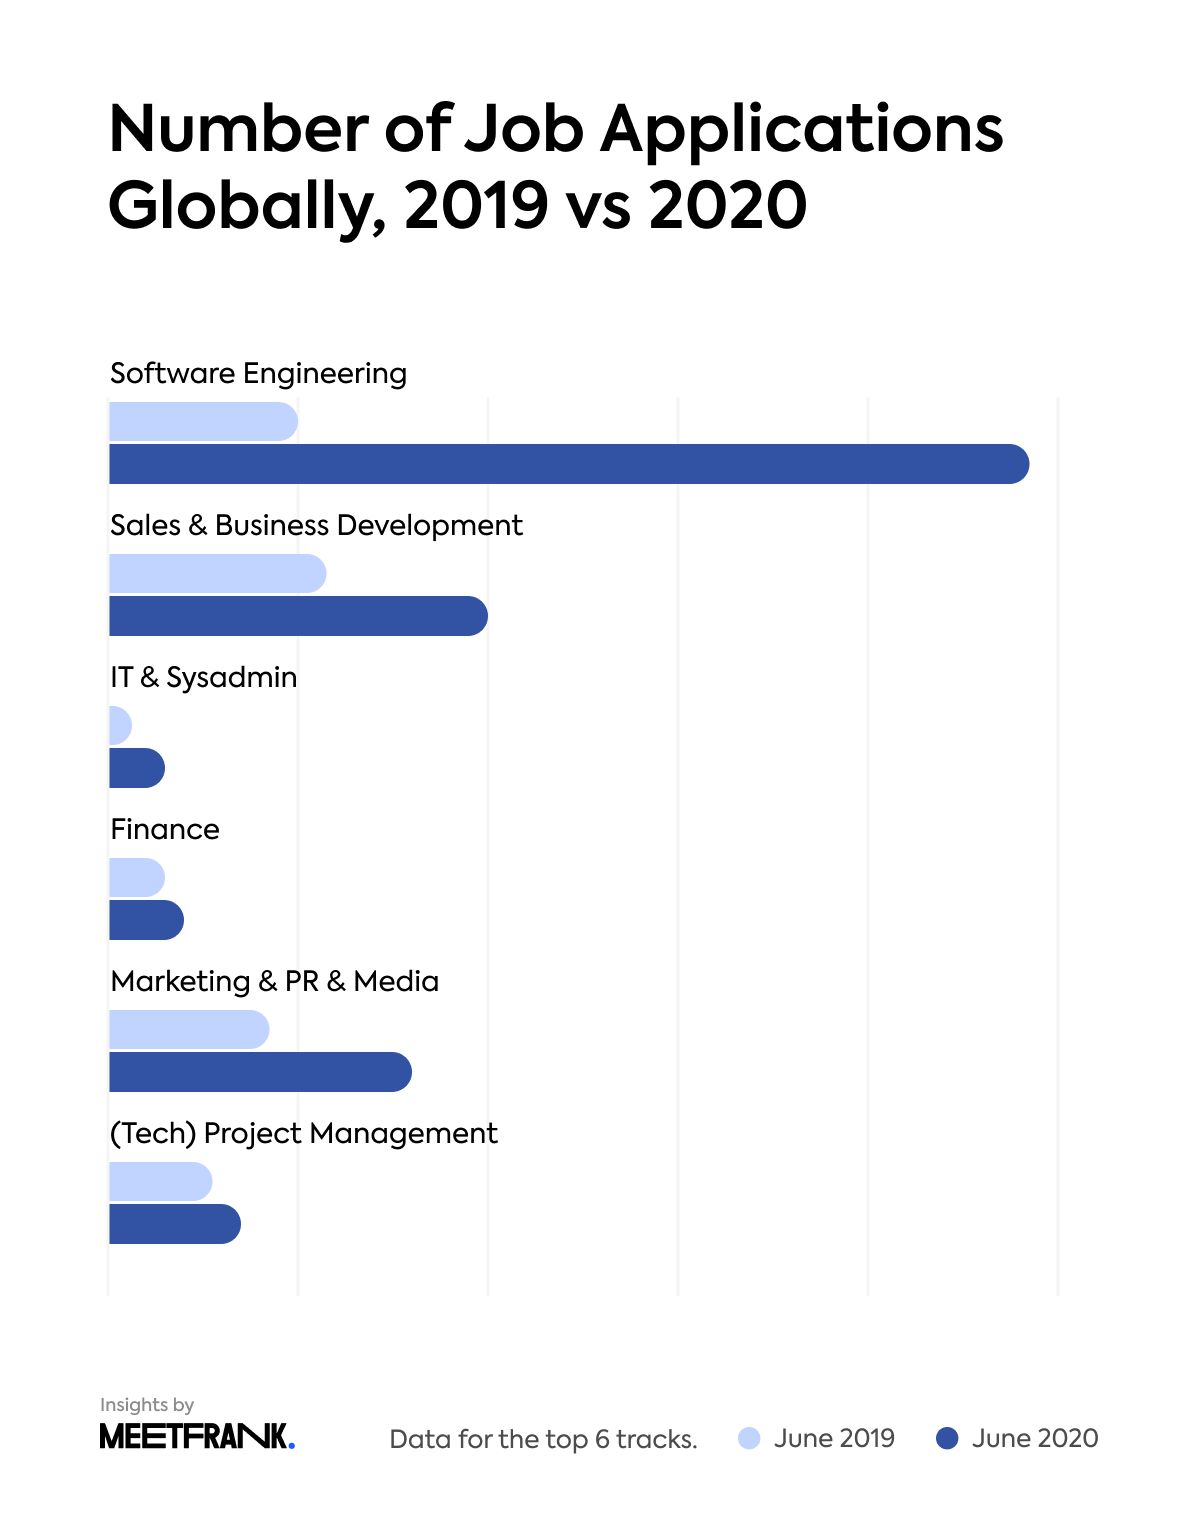 the number of job applications globally in 2019 vs 2020